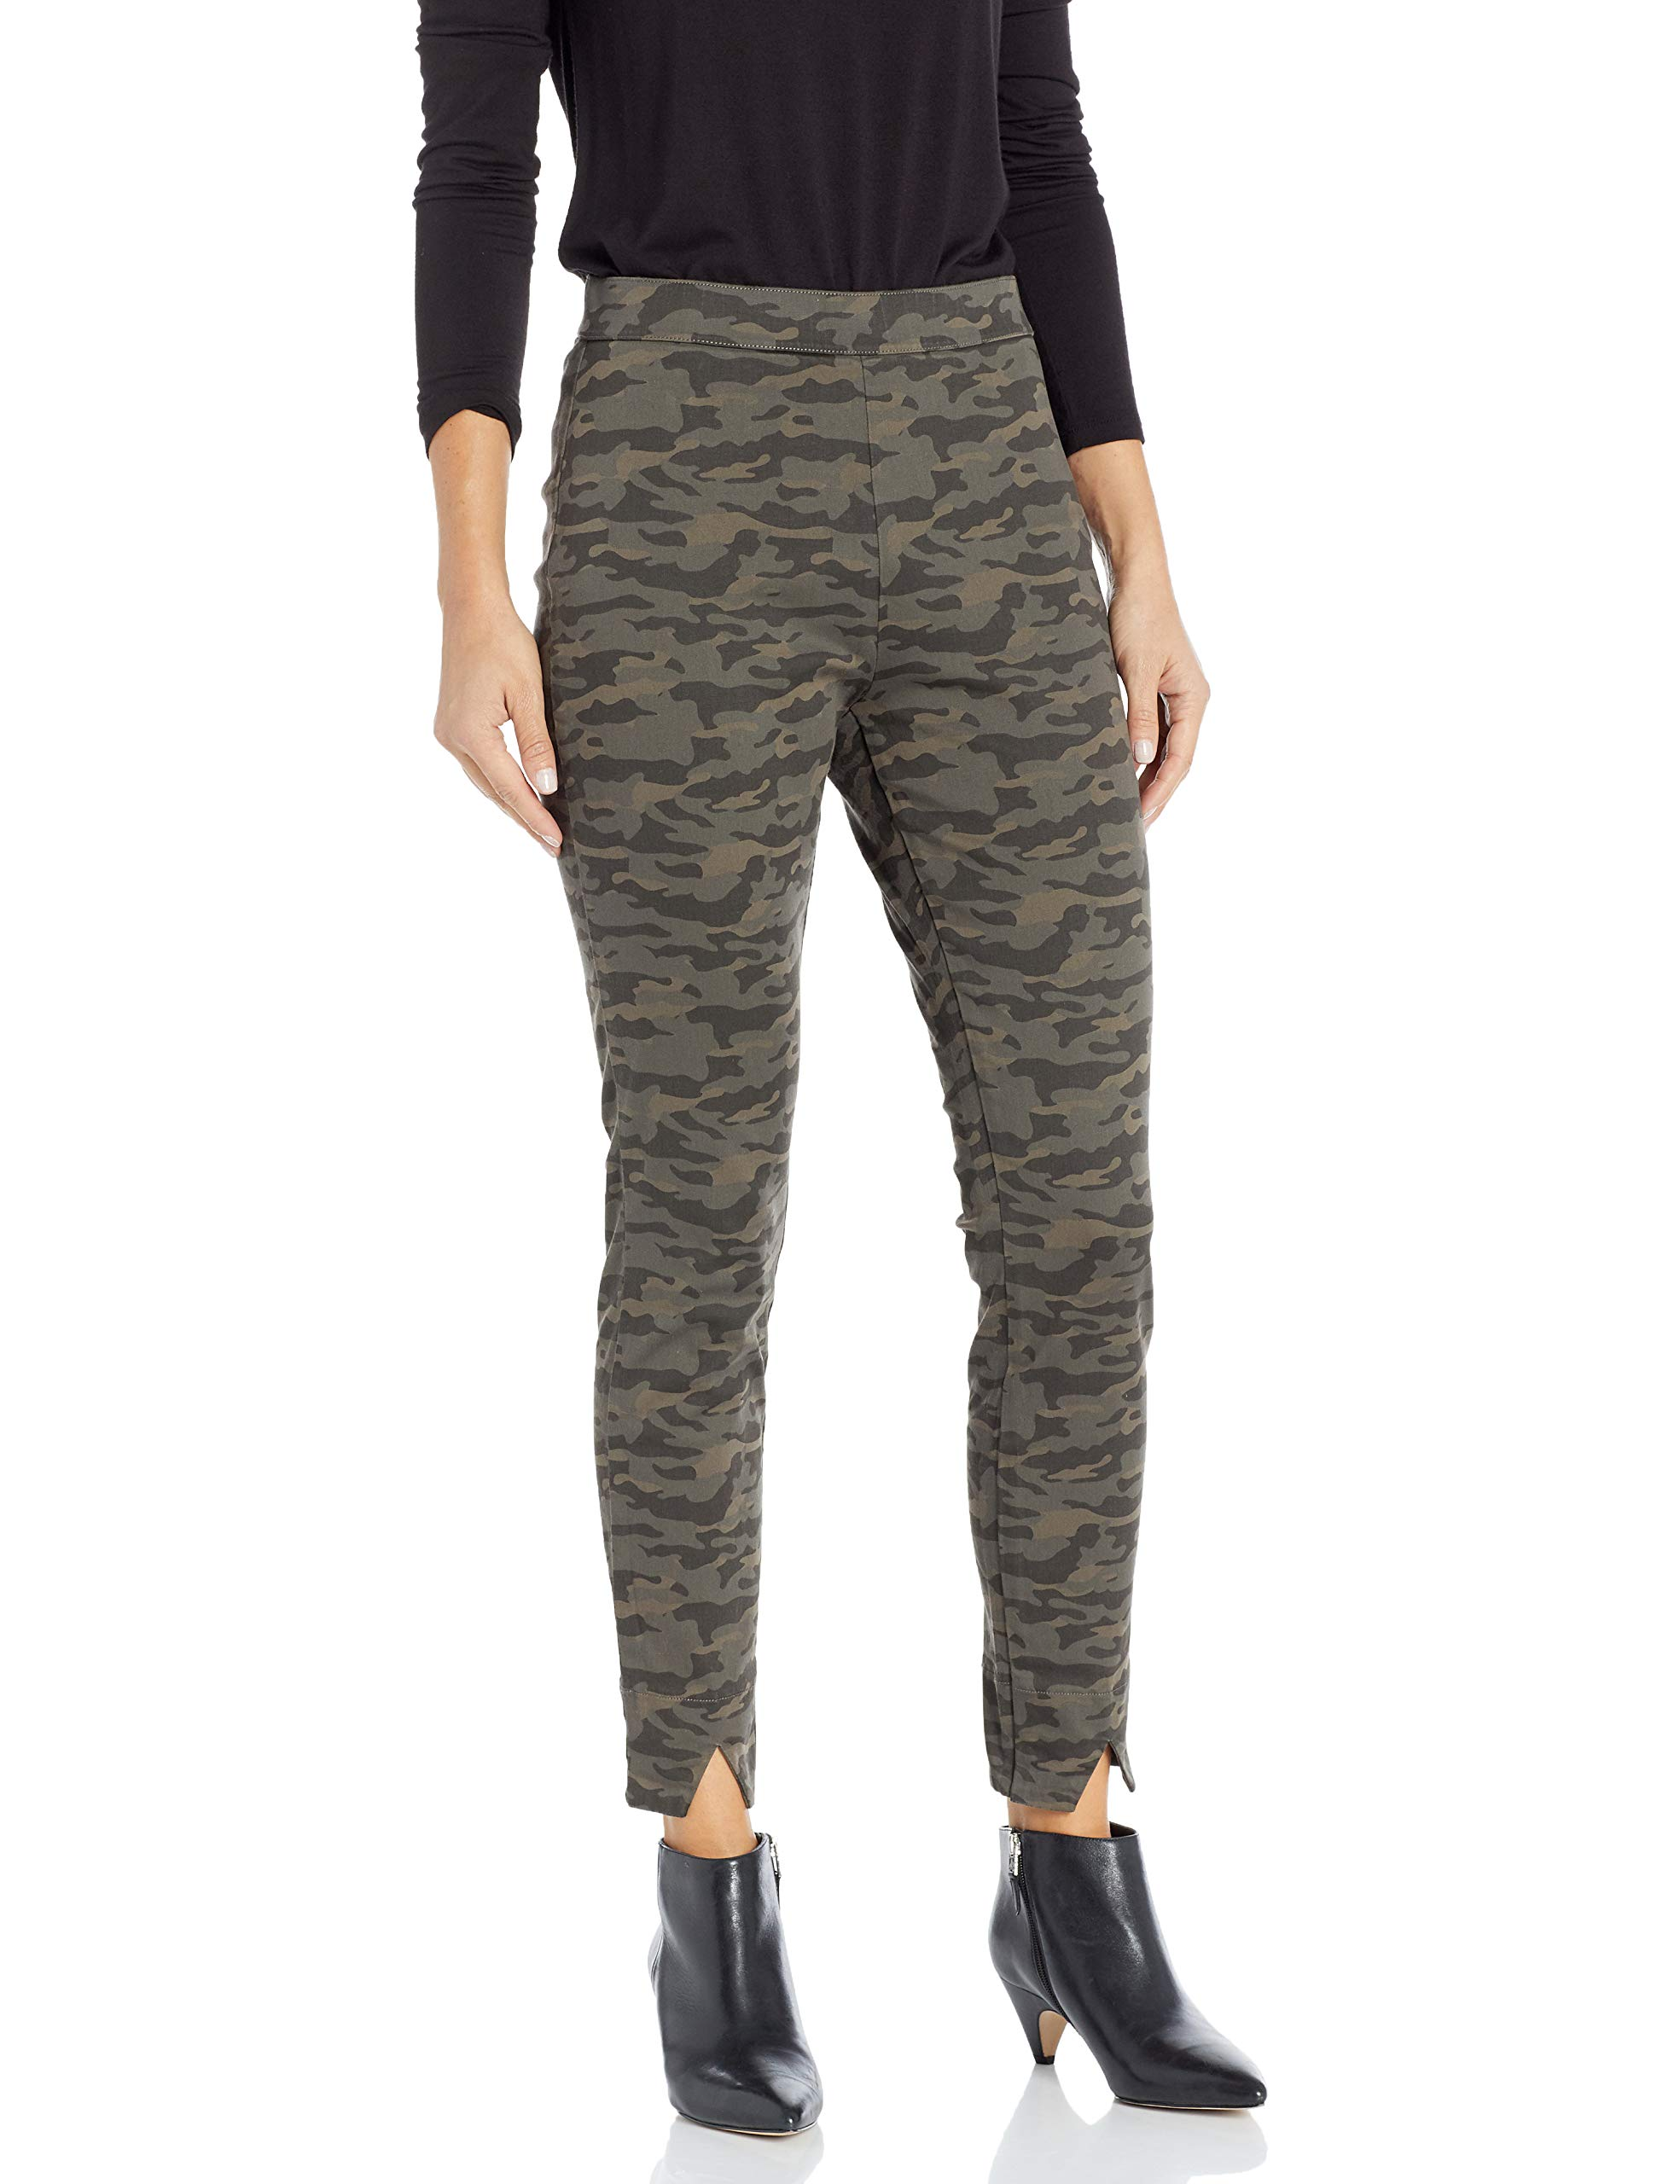 HUE Women's Camo Sateen High Waist Skimmer, Army, Extra Small by HUE